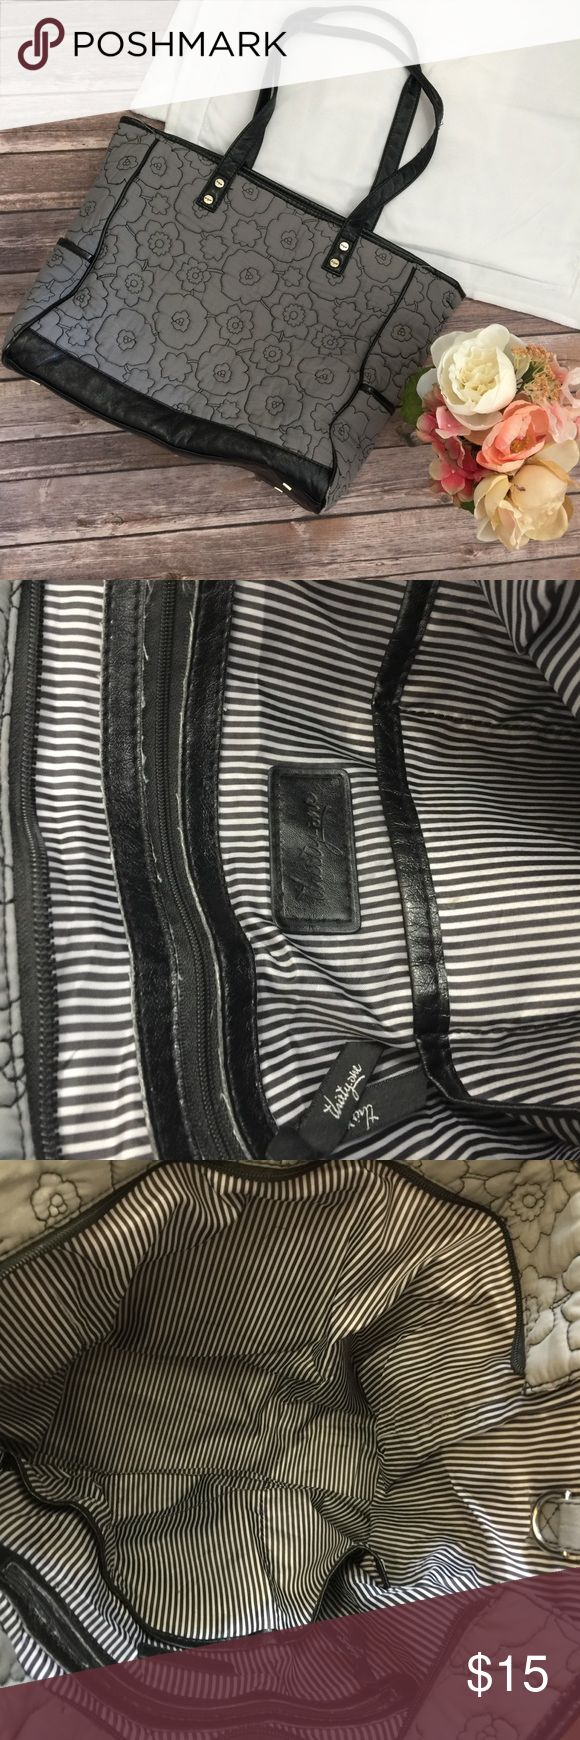 """Gray Thirty One Tote Bag Great bag! Does show signs of wear but all of the hardware is still great and it has a lot of life left! All imperfections are shown in images. Approximate dimensions- 13""""L x 18""""W Thirty One Bags Totes"""